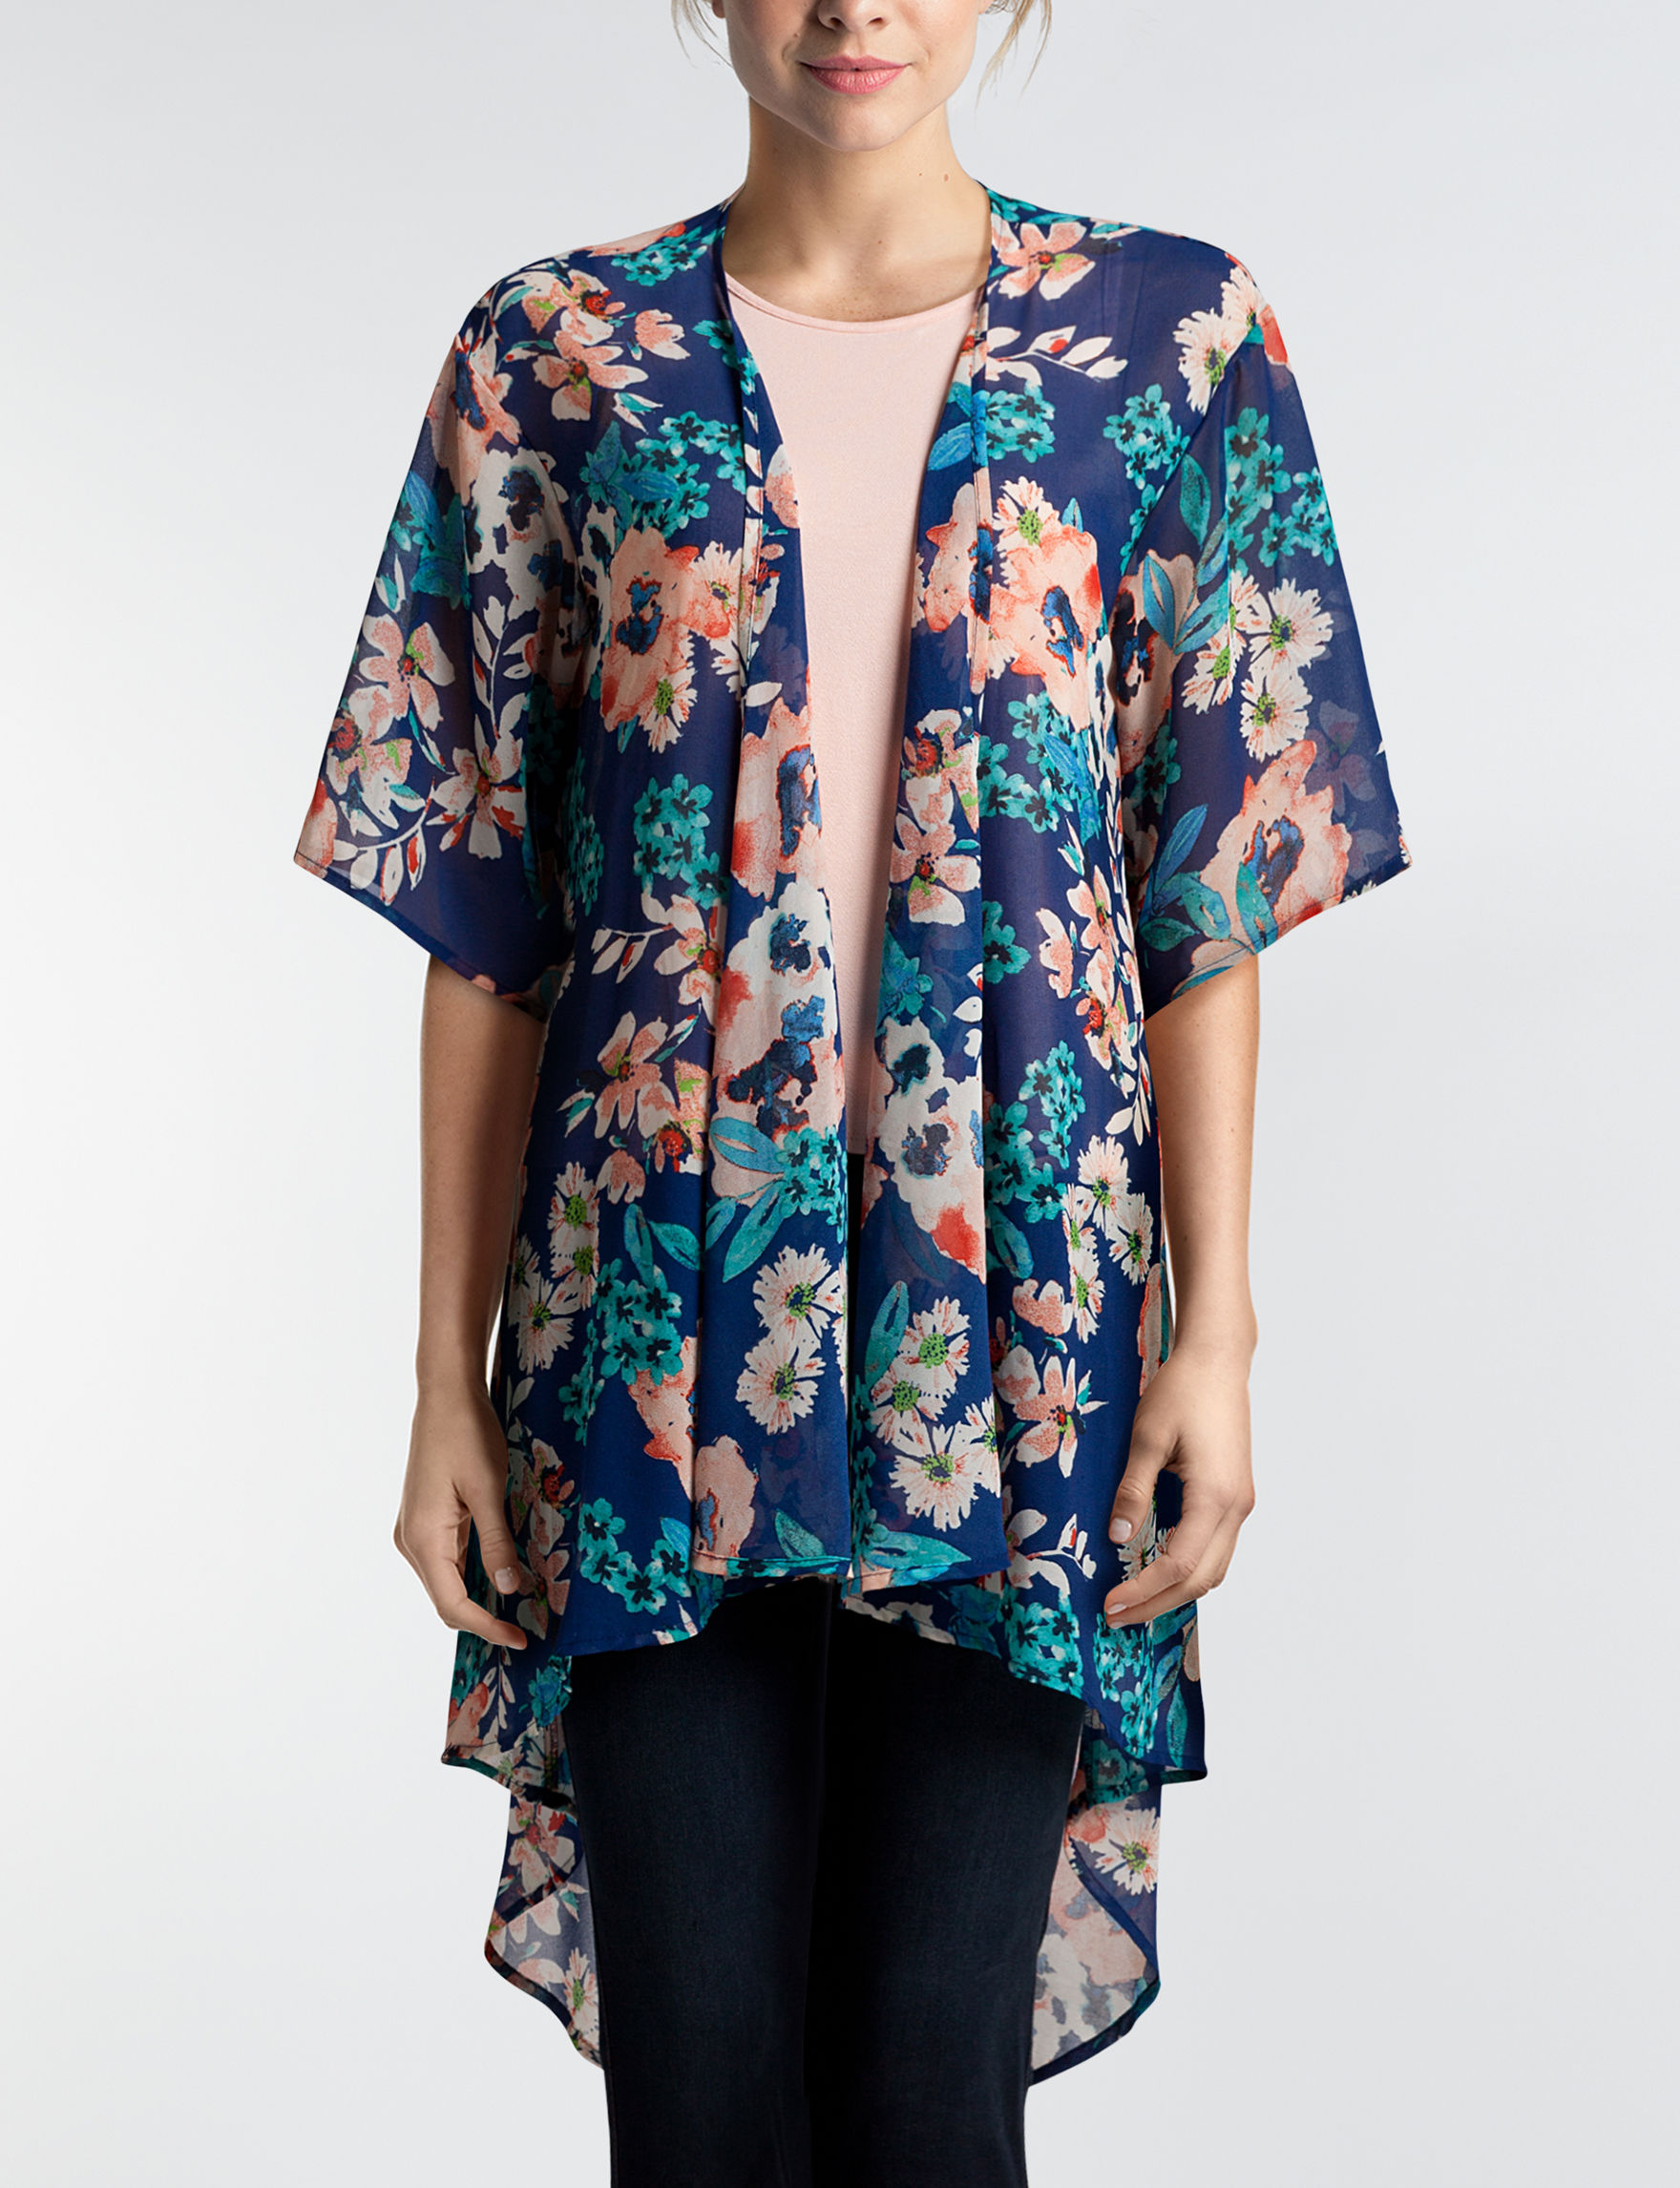 Liberty Love Navy Floral